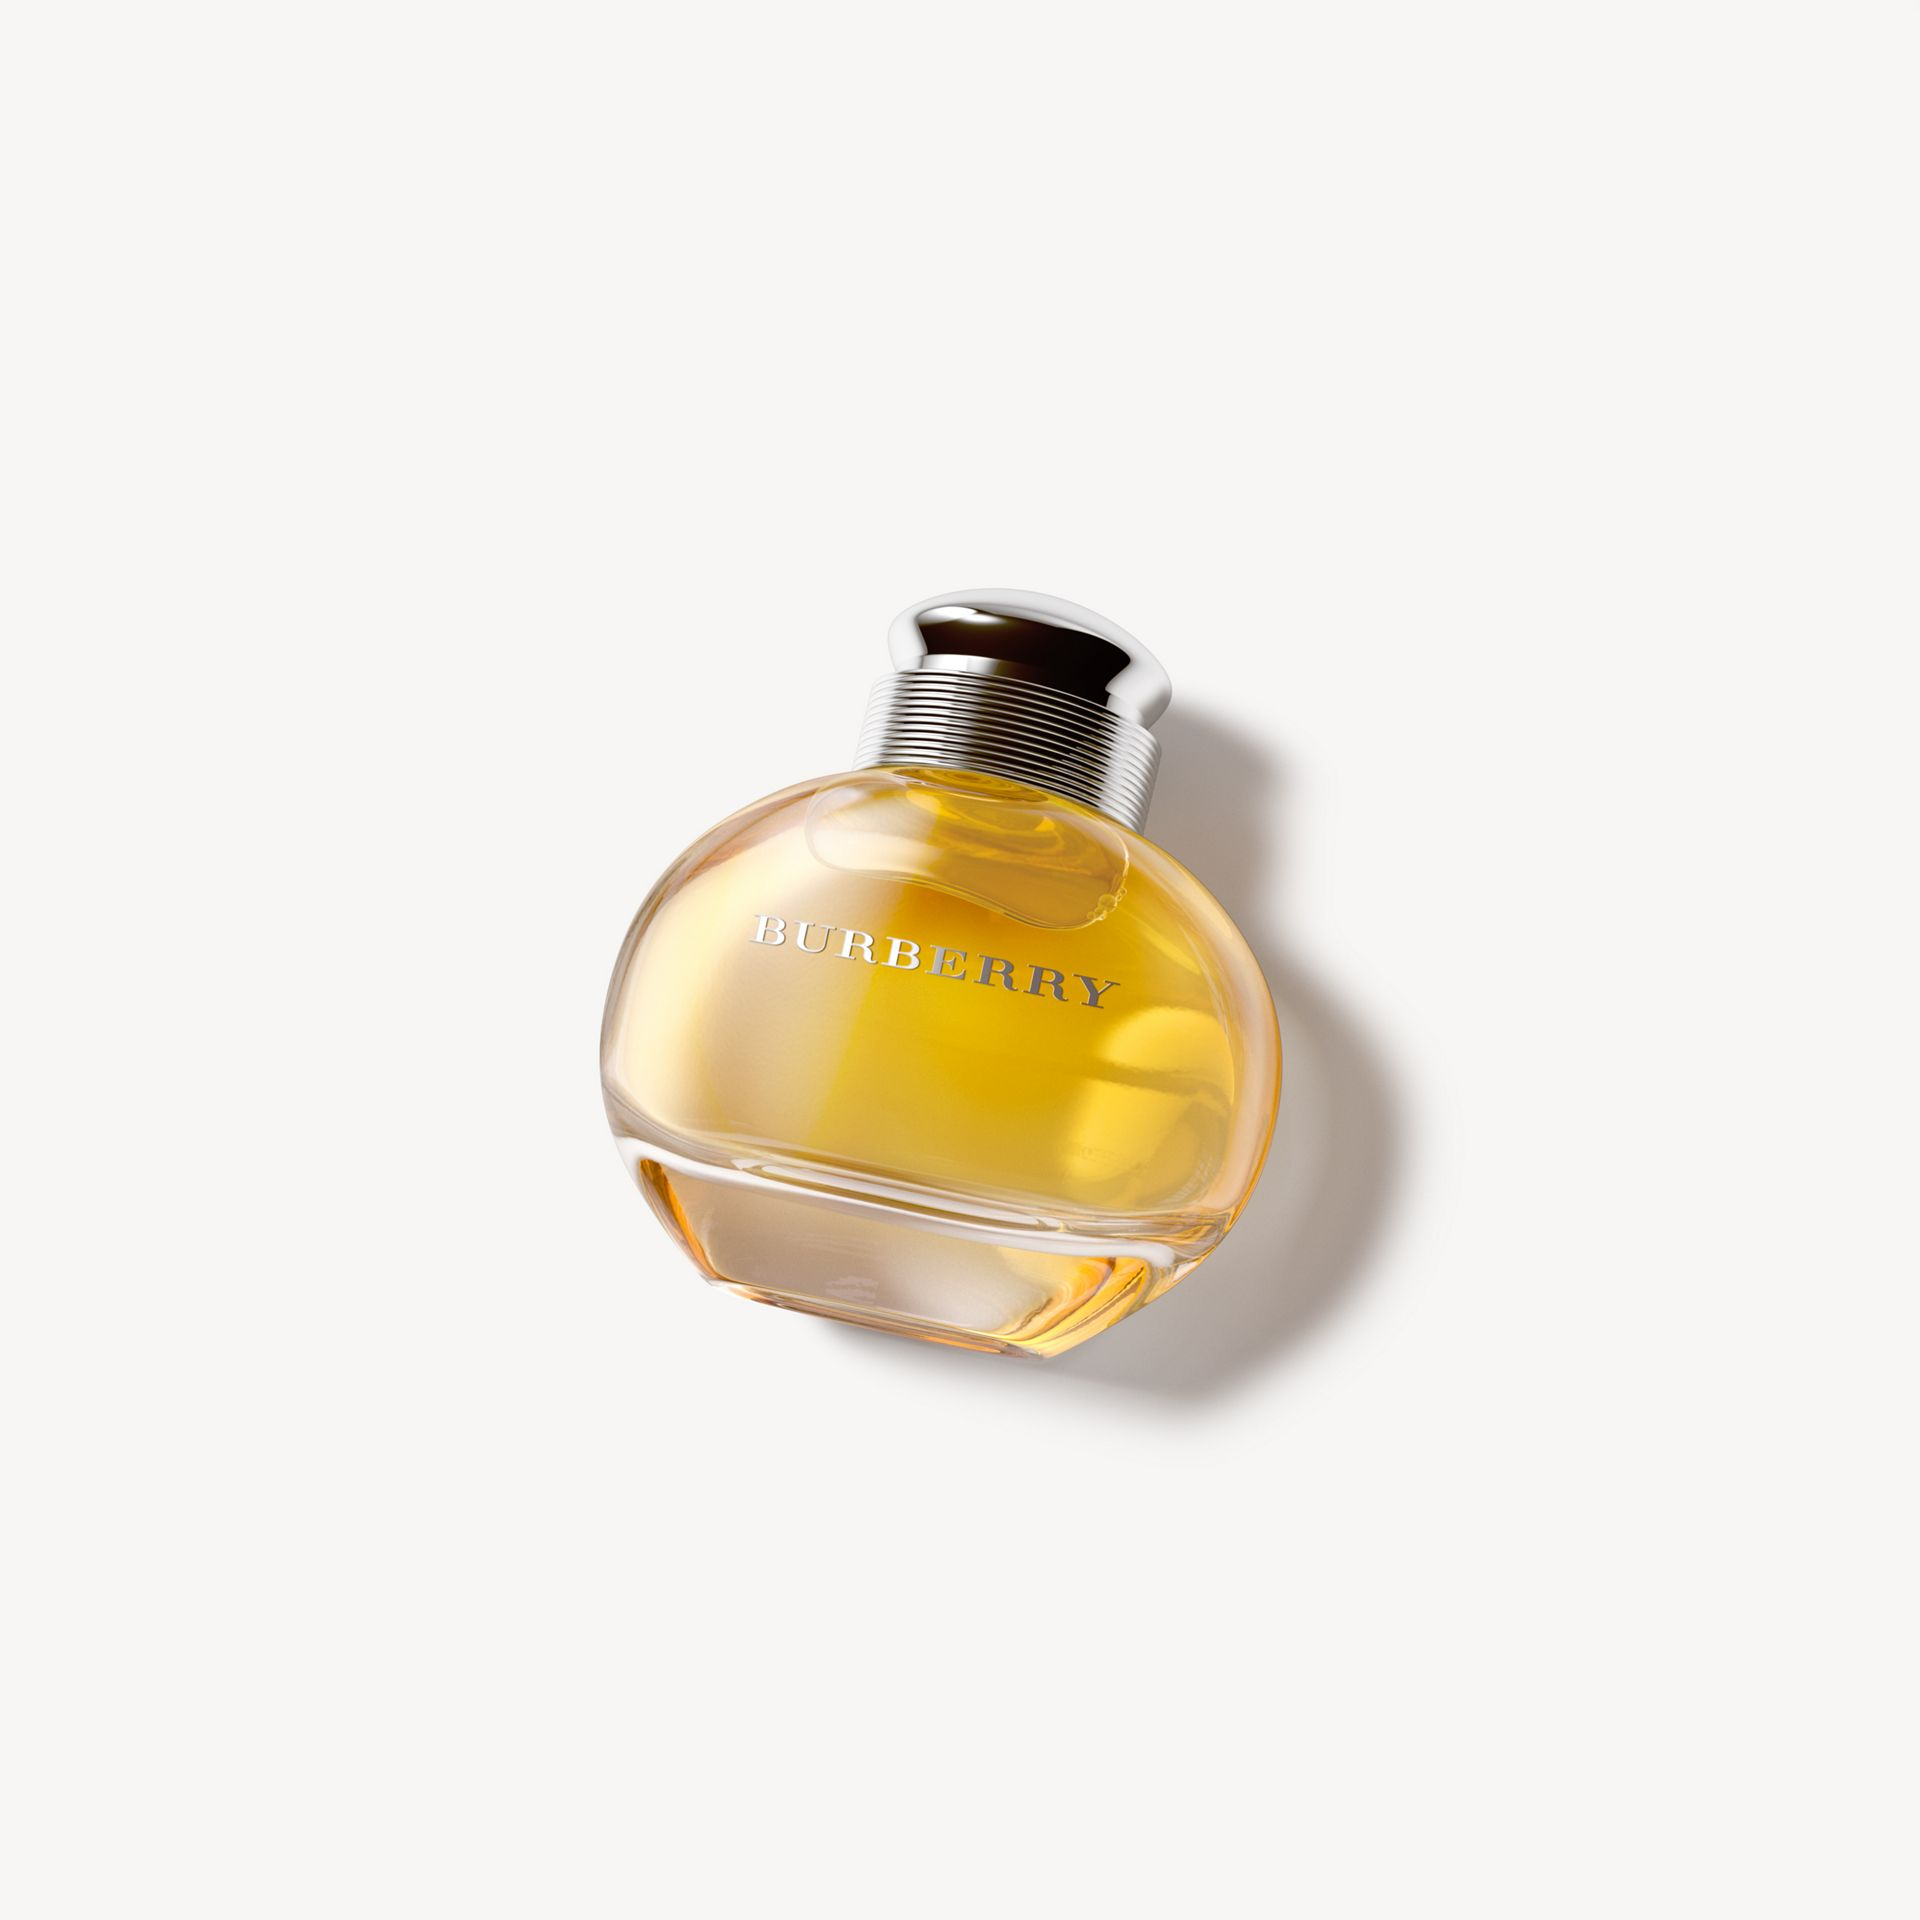 Burberry For Women Eau de Parfum 50ml - gallery image 1